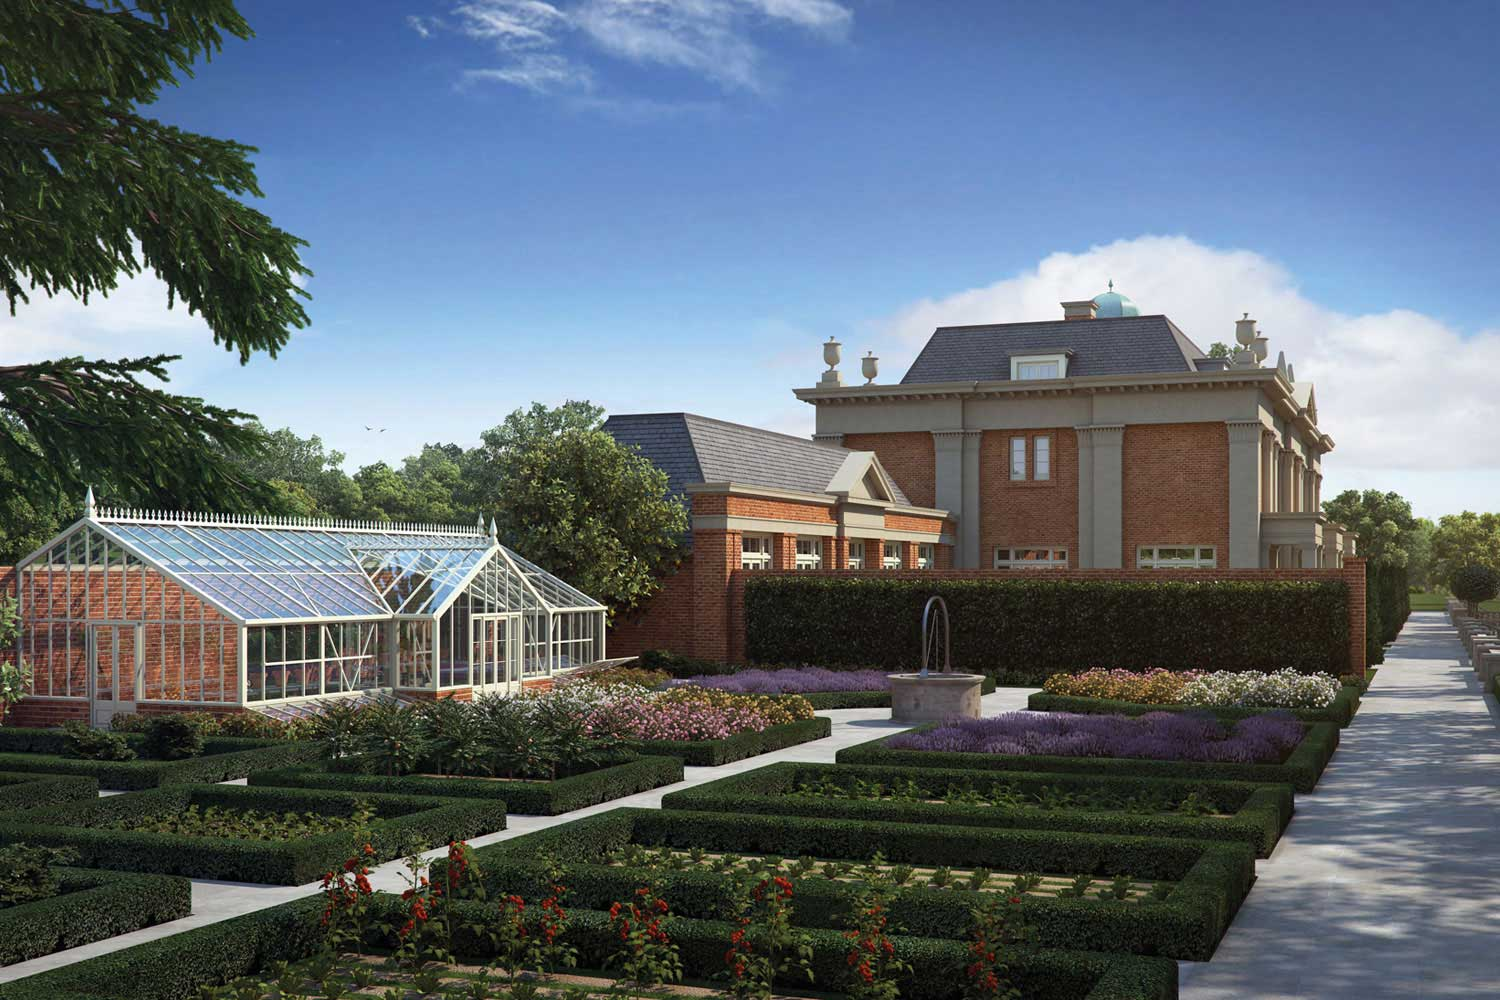 Architectural visualisation of a new country estate house and garden